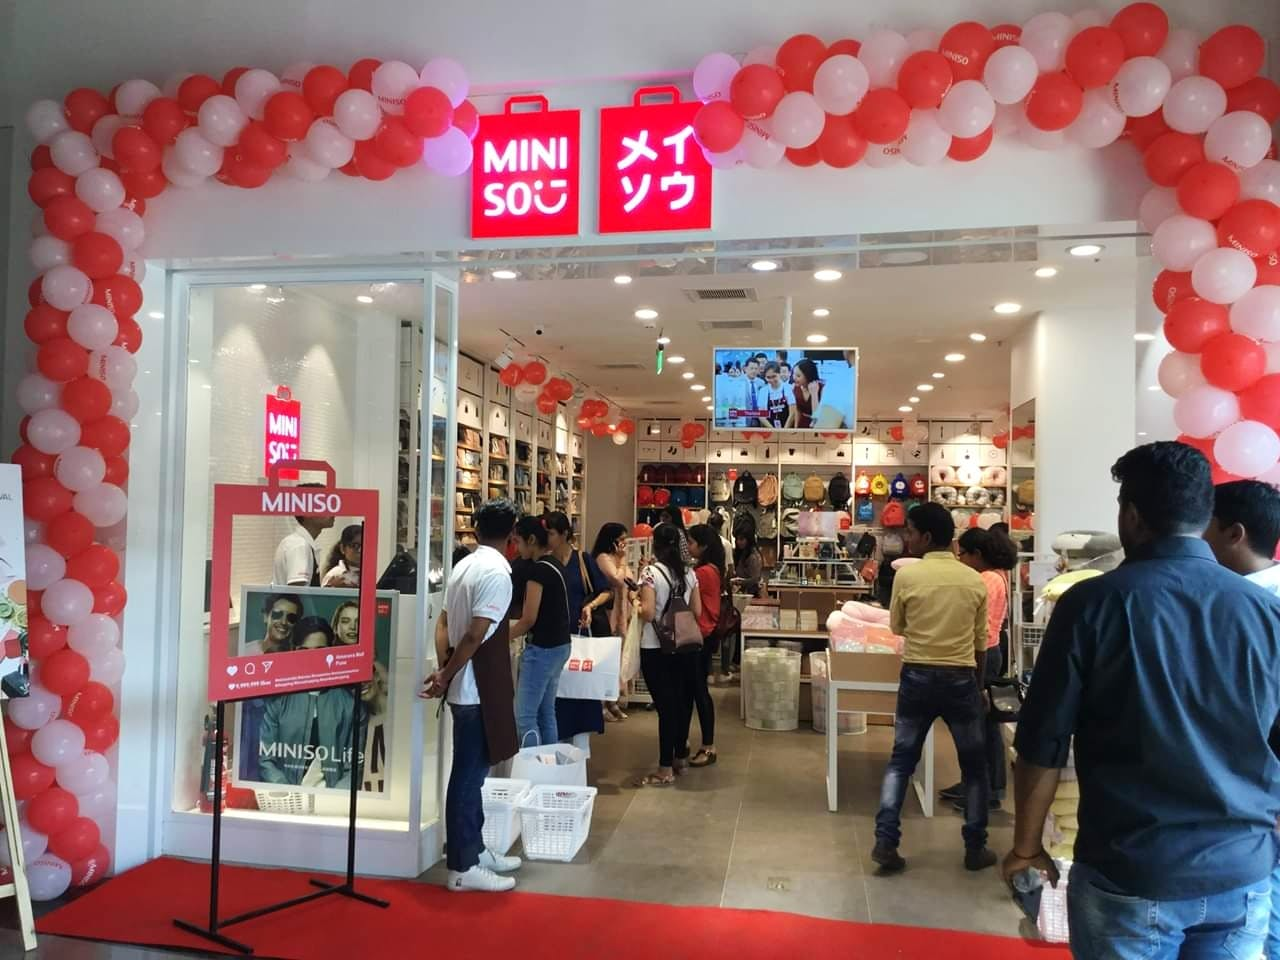 Building,Retail,Outlet store,Trade,Shopping mall,Event,Shopping